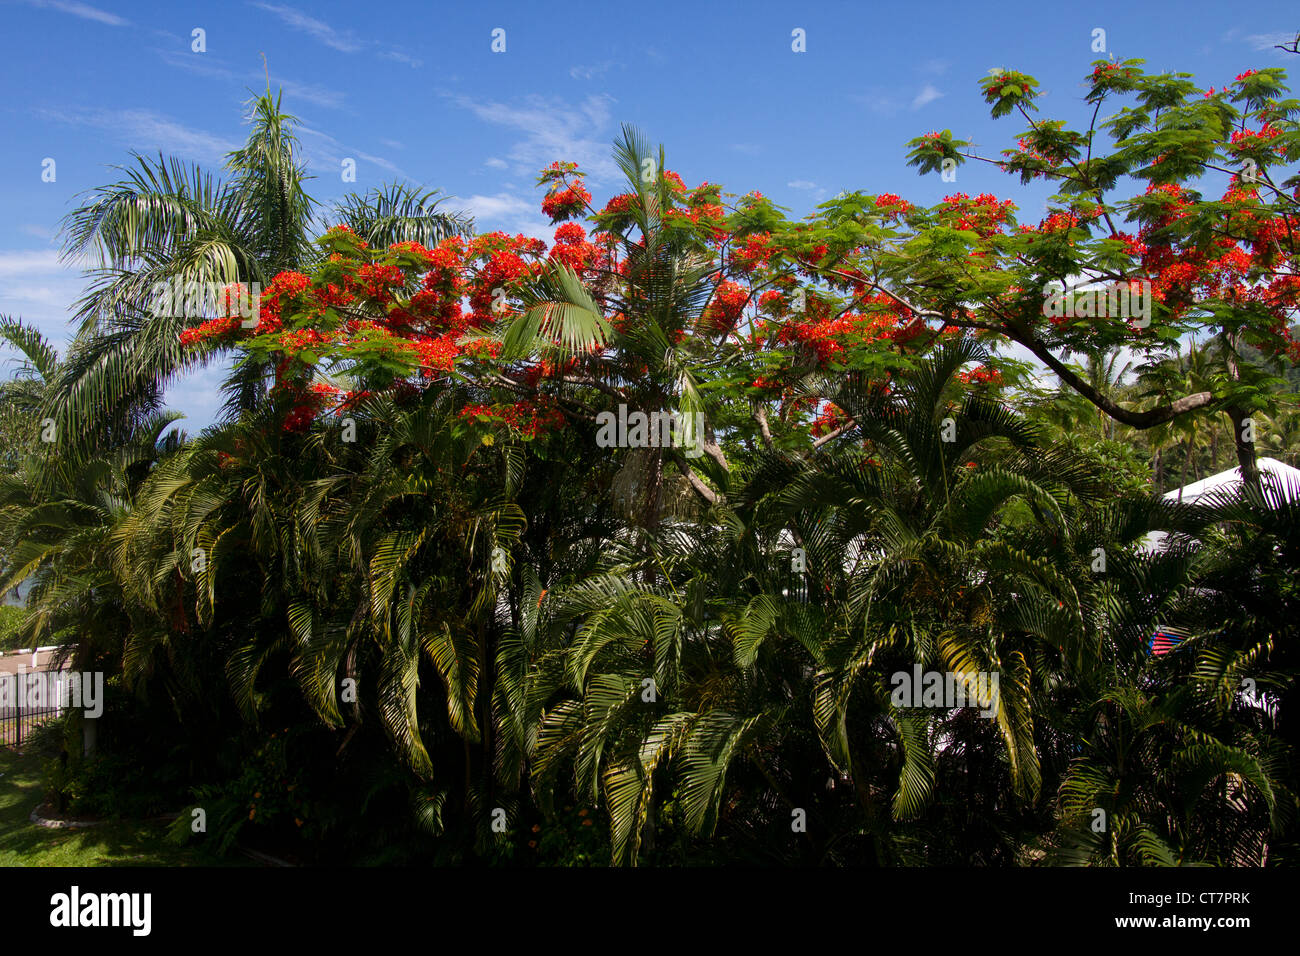 Red-flowering Poinciana (Delonia regia) trees and Palm trees, Trinity Beach, North Queensland, Australia - Stock Image